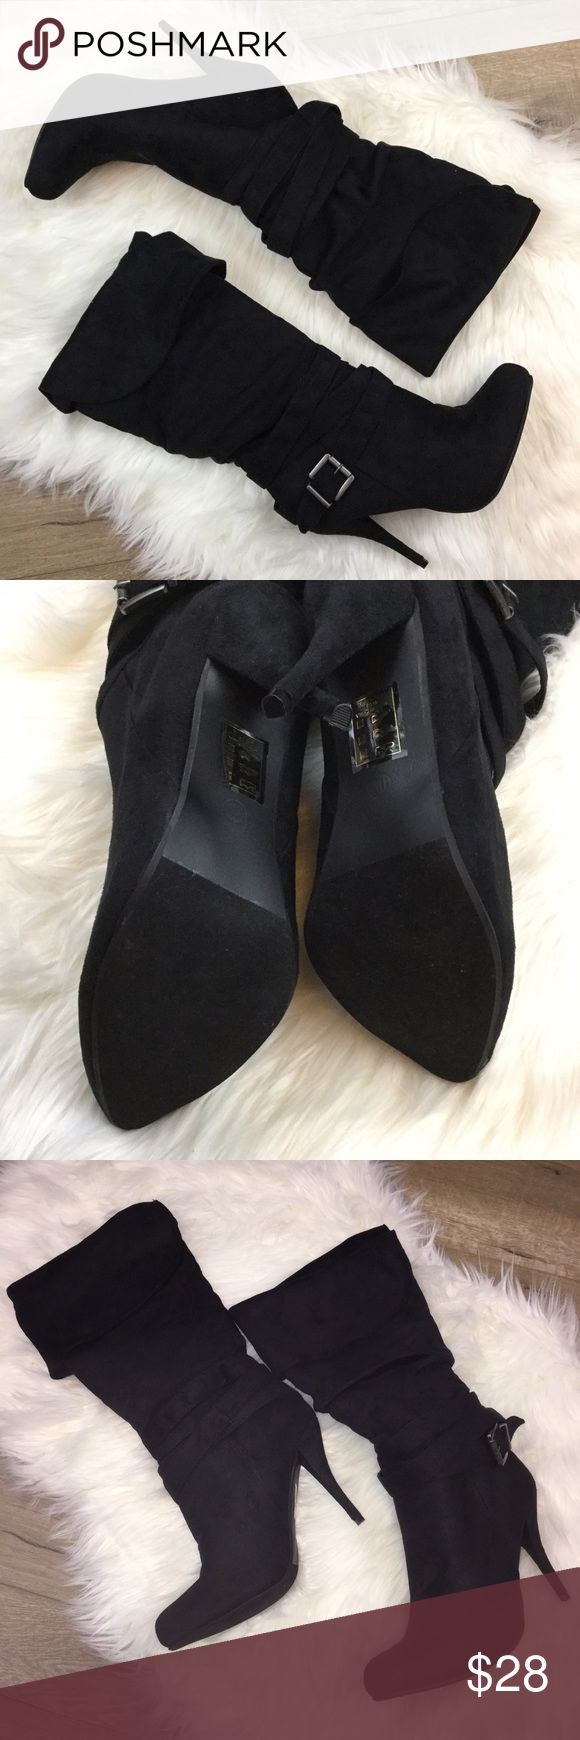 Black velvet soft heel boots Suede like velvet soft heel boots size 11 regular fit. Can be worn with tips folded under knee or over knee. Slip on style with decorative straps. Brand new never worn, shoes only. Shoe Dazzle Shoes Heeled Boots